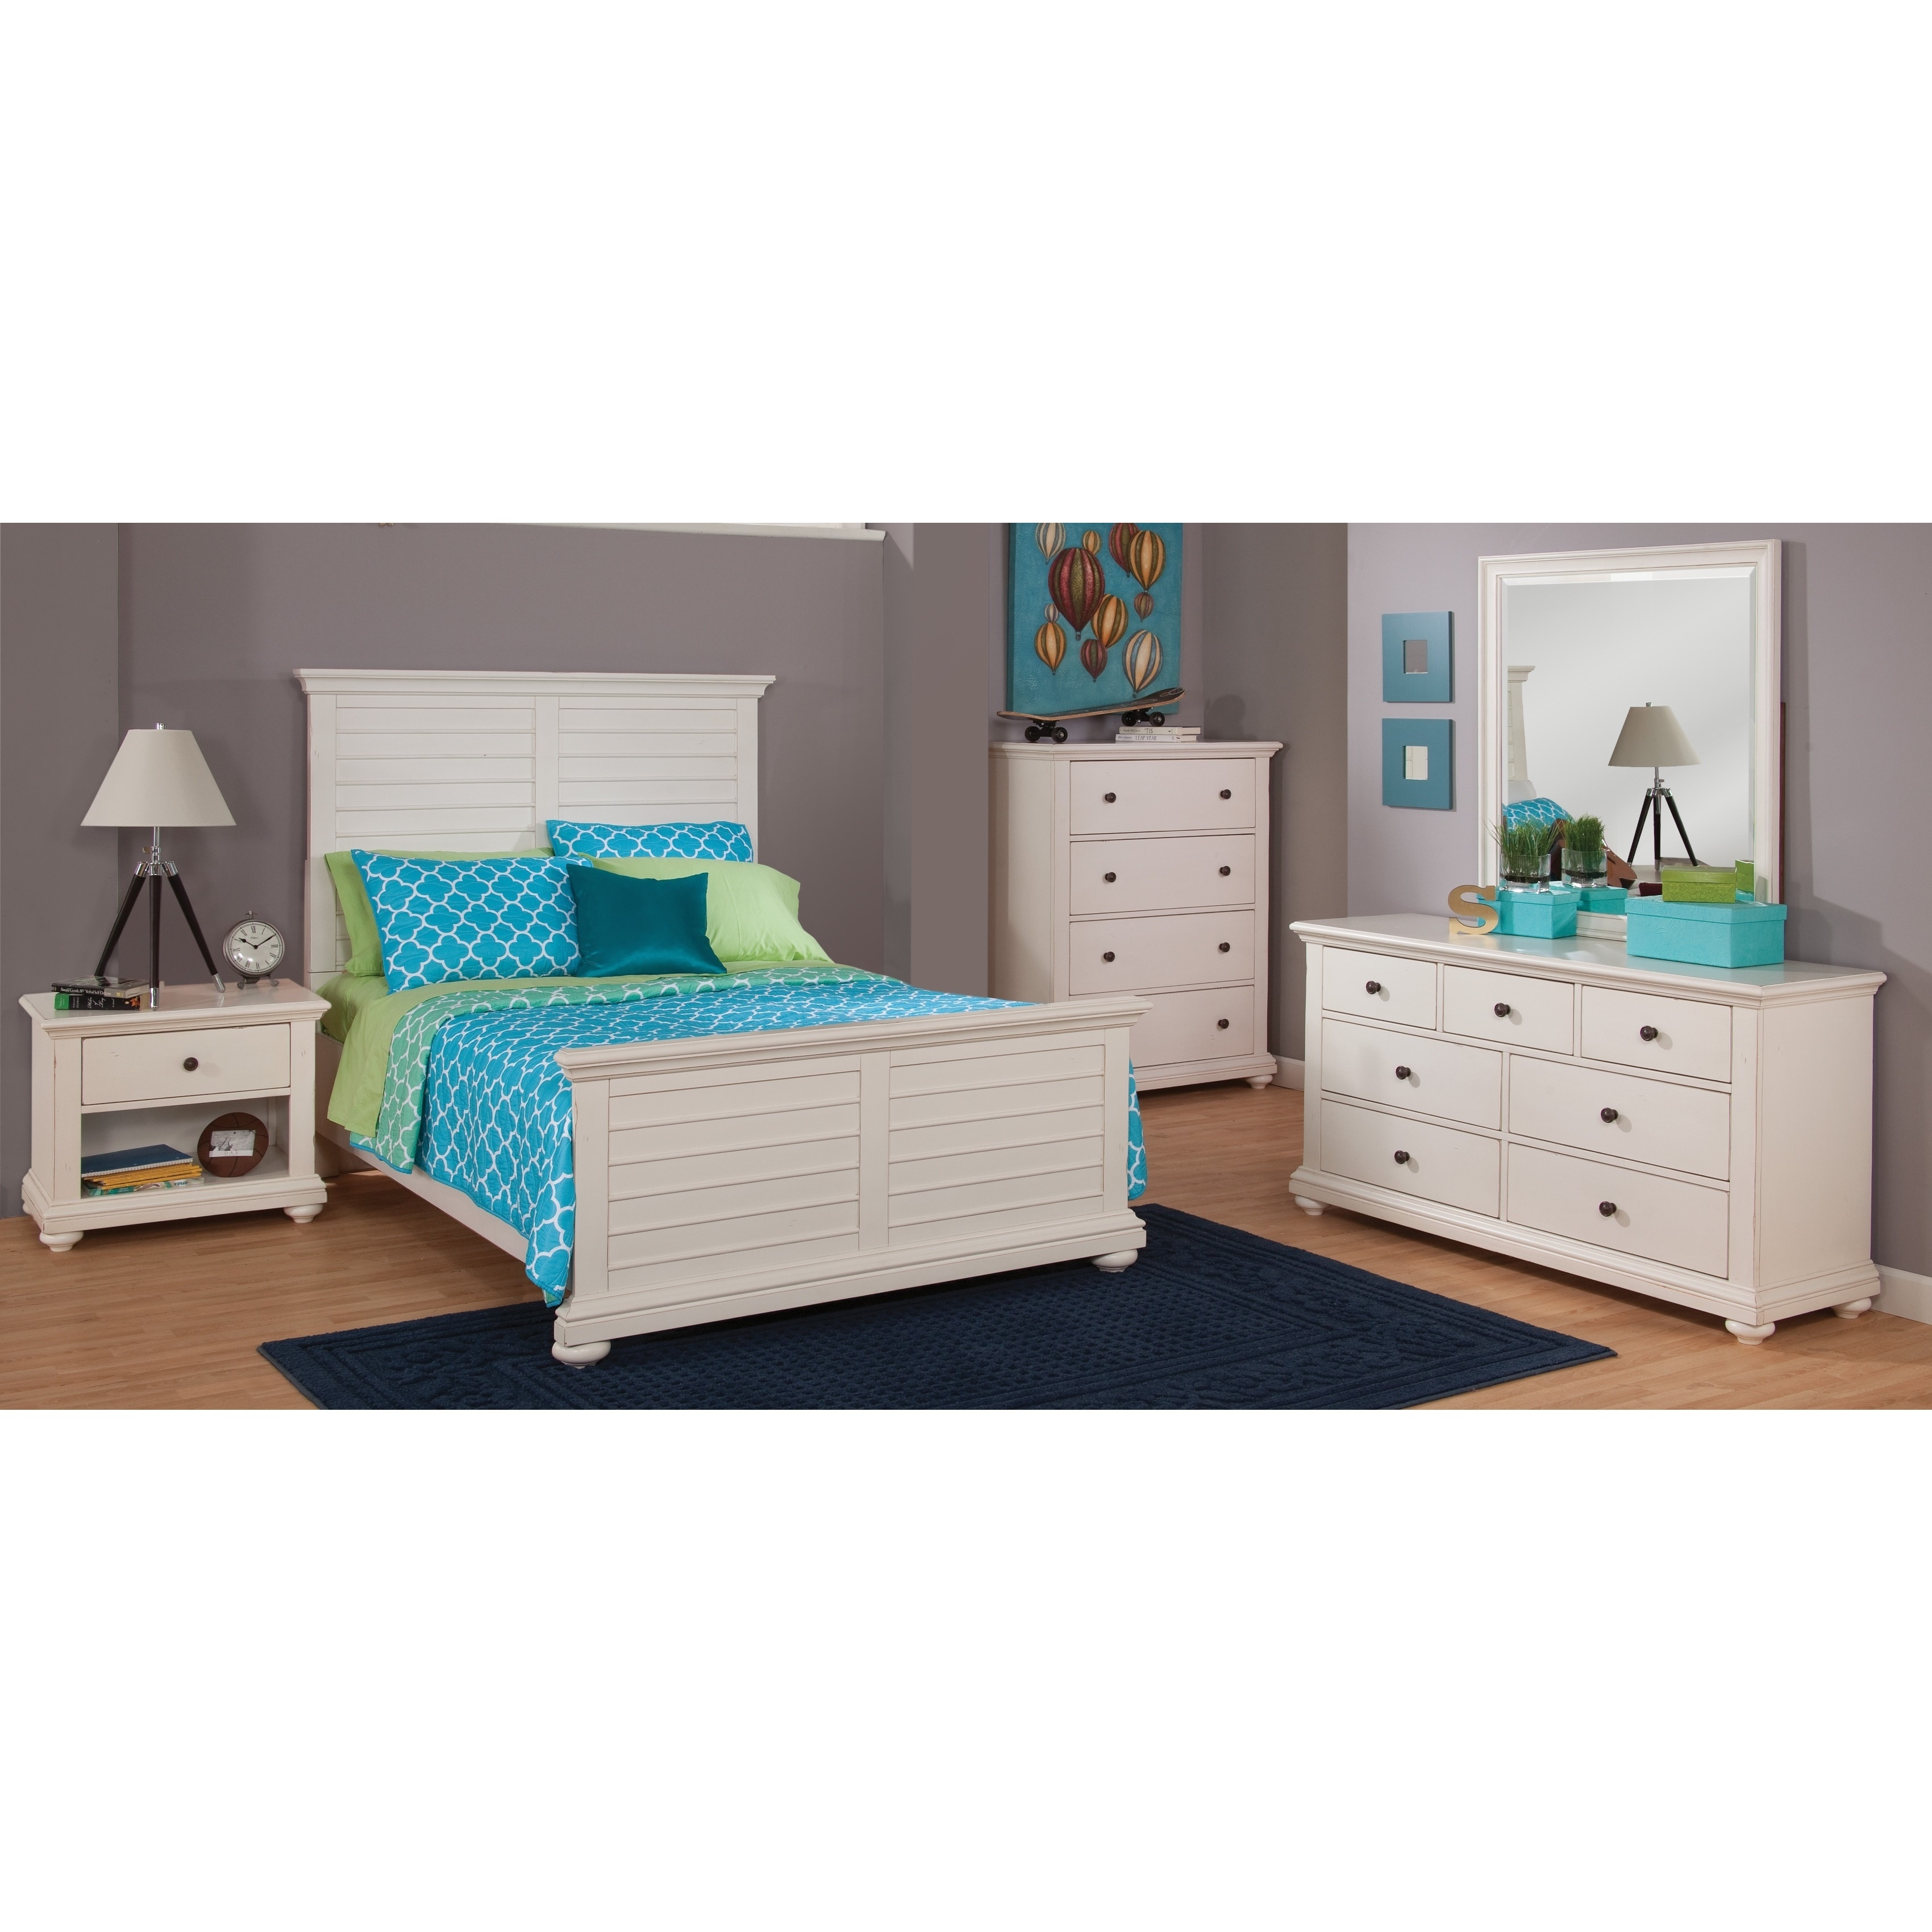 Huntington Bedroom Furniture Greyson Living Huntington Antique White 5 Piece Bedroom Set